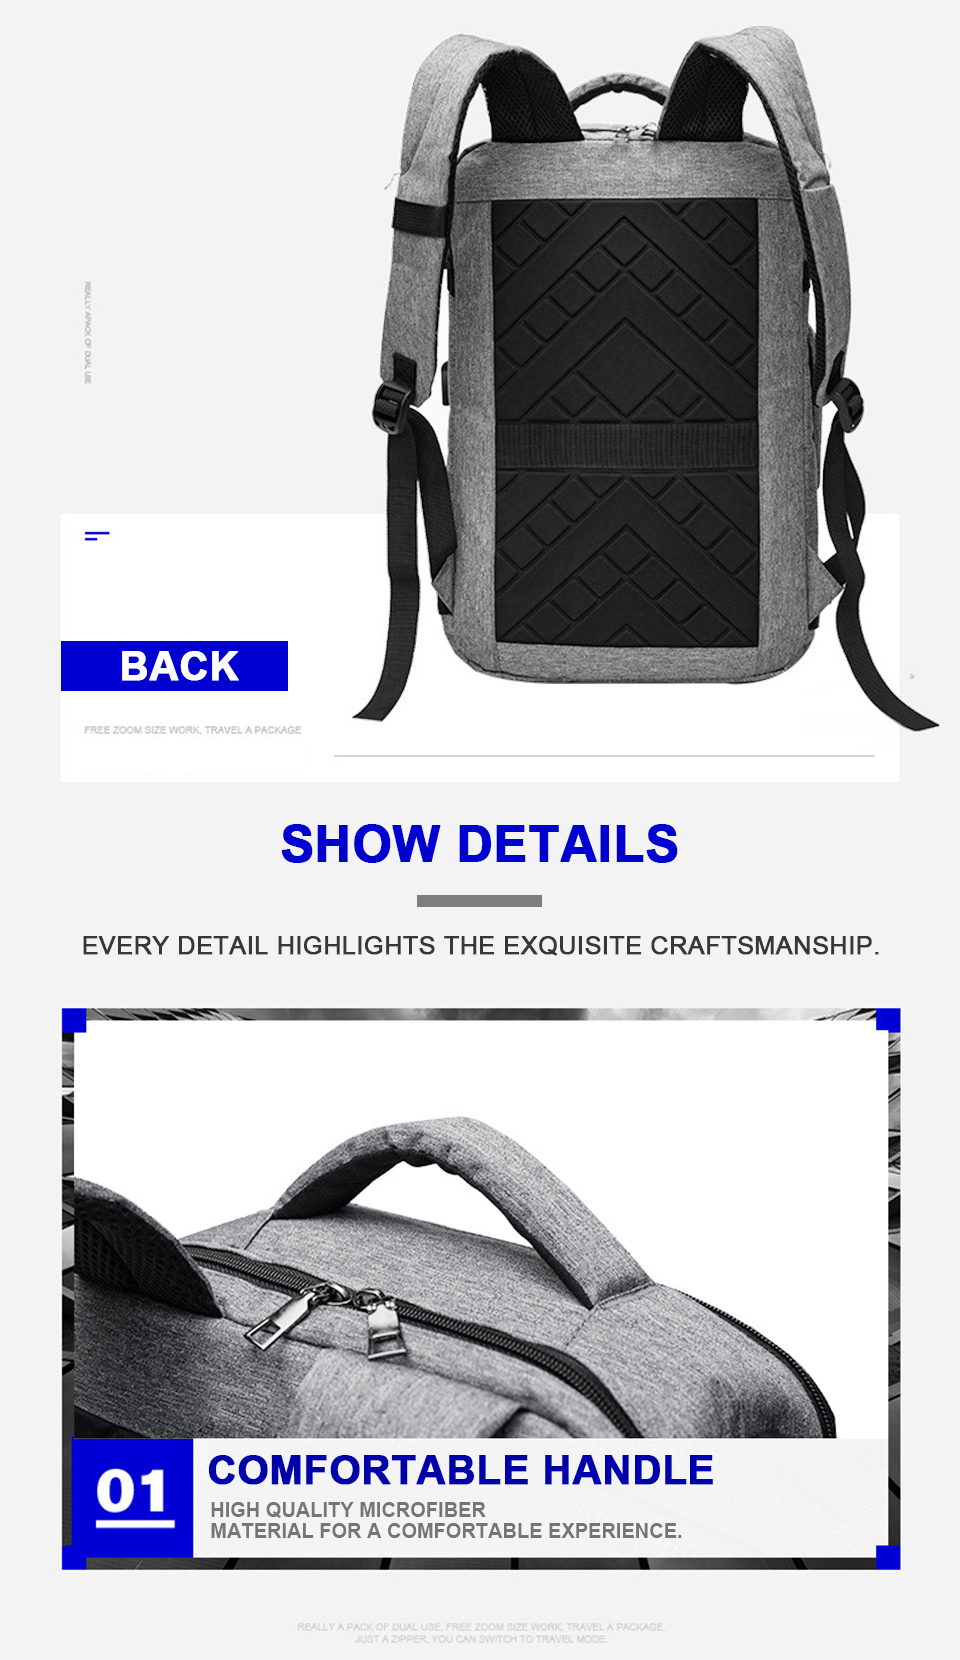 Men Backpack Anti Theft Travel Bagpack Laptop 15.6 Inch Notebook Waterproof Bags USB Charging Male Business Fashion Unisex Bag (15)